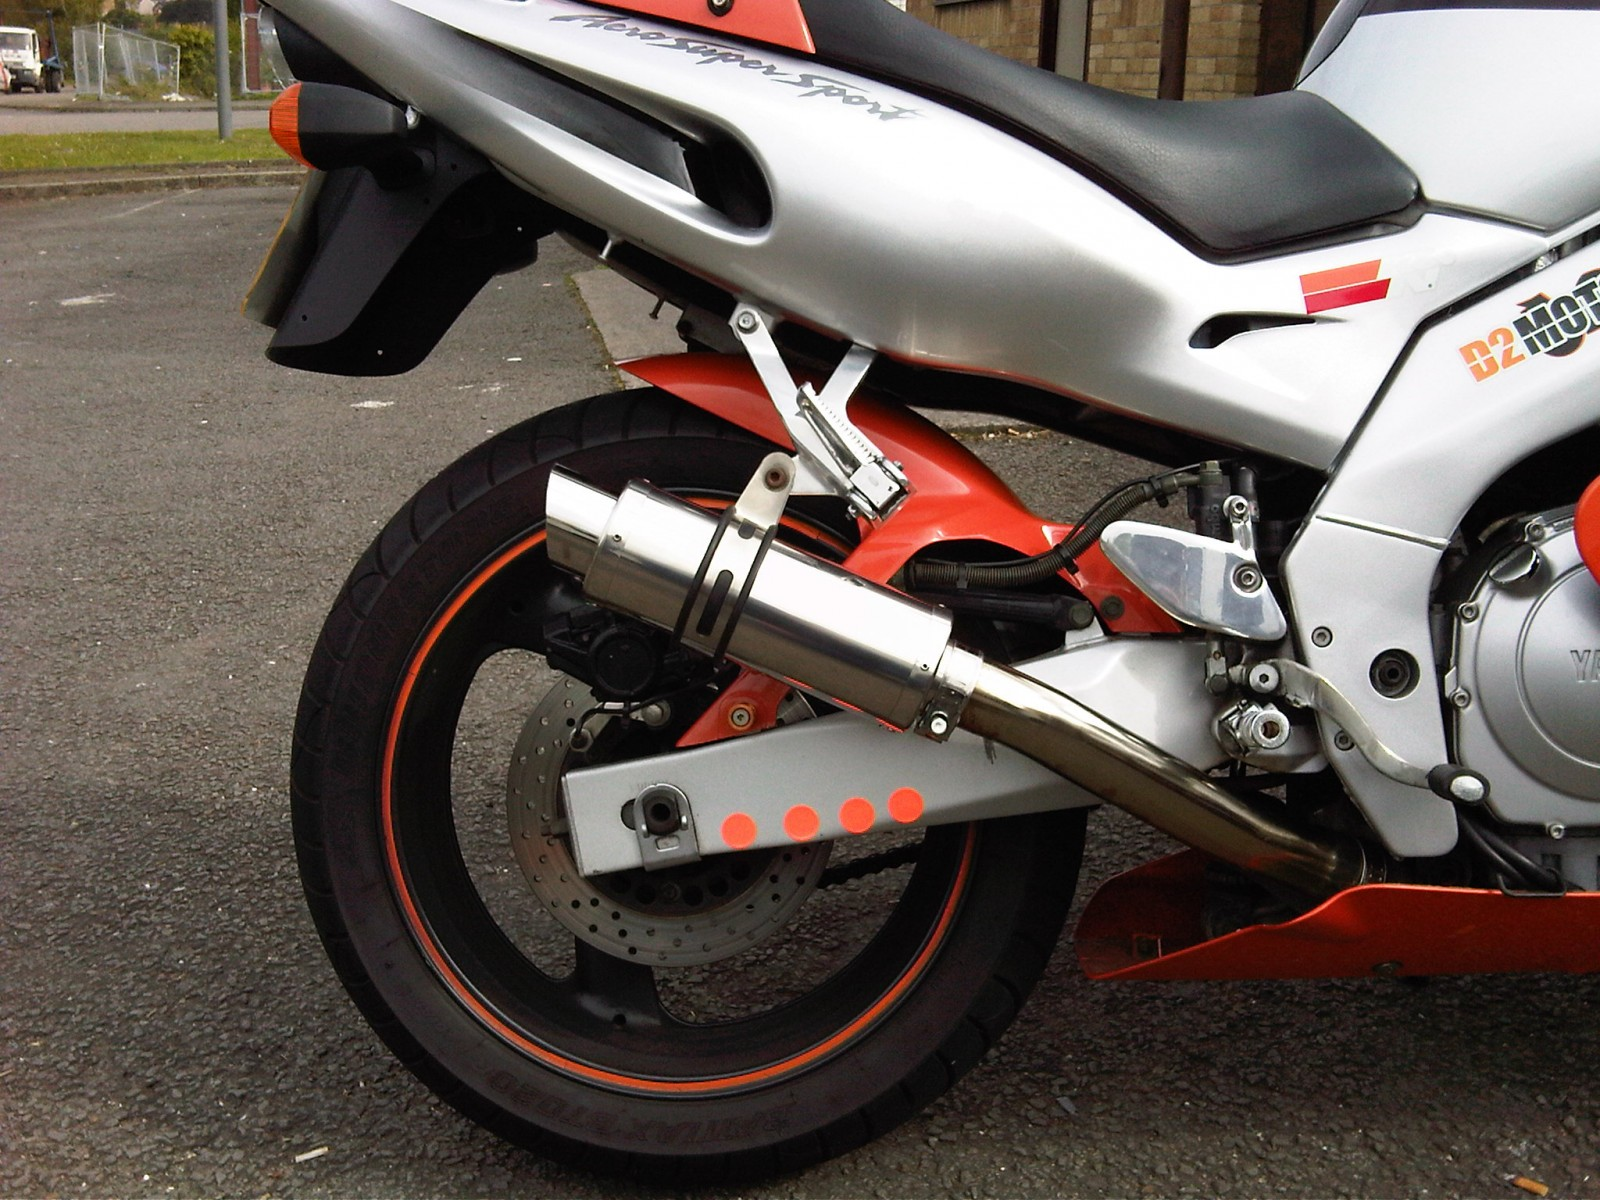 """Yamaha  YZF 600 Thundercat <p>A16 Moto GP Stainless Exhaust with Polished Slashcut Outlet</p><br/><a href=""""https://a16roadnracesupplies.co.uk/product/a16-yamaha-exhausts/"""">Buy now!</a>"""